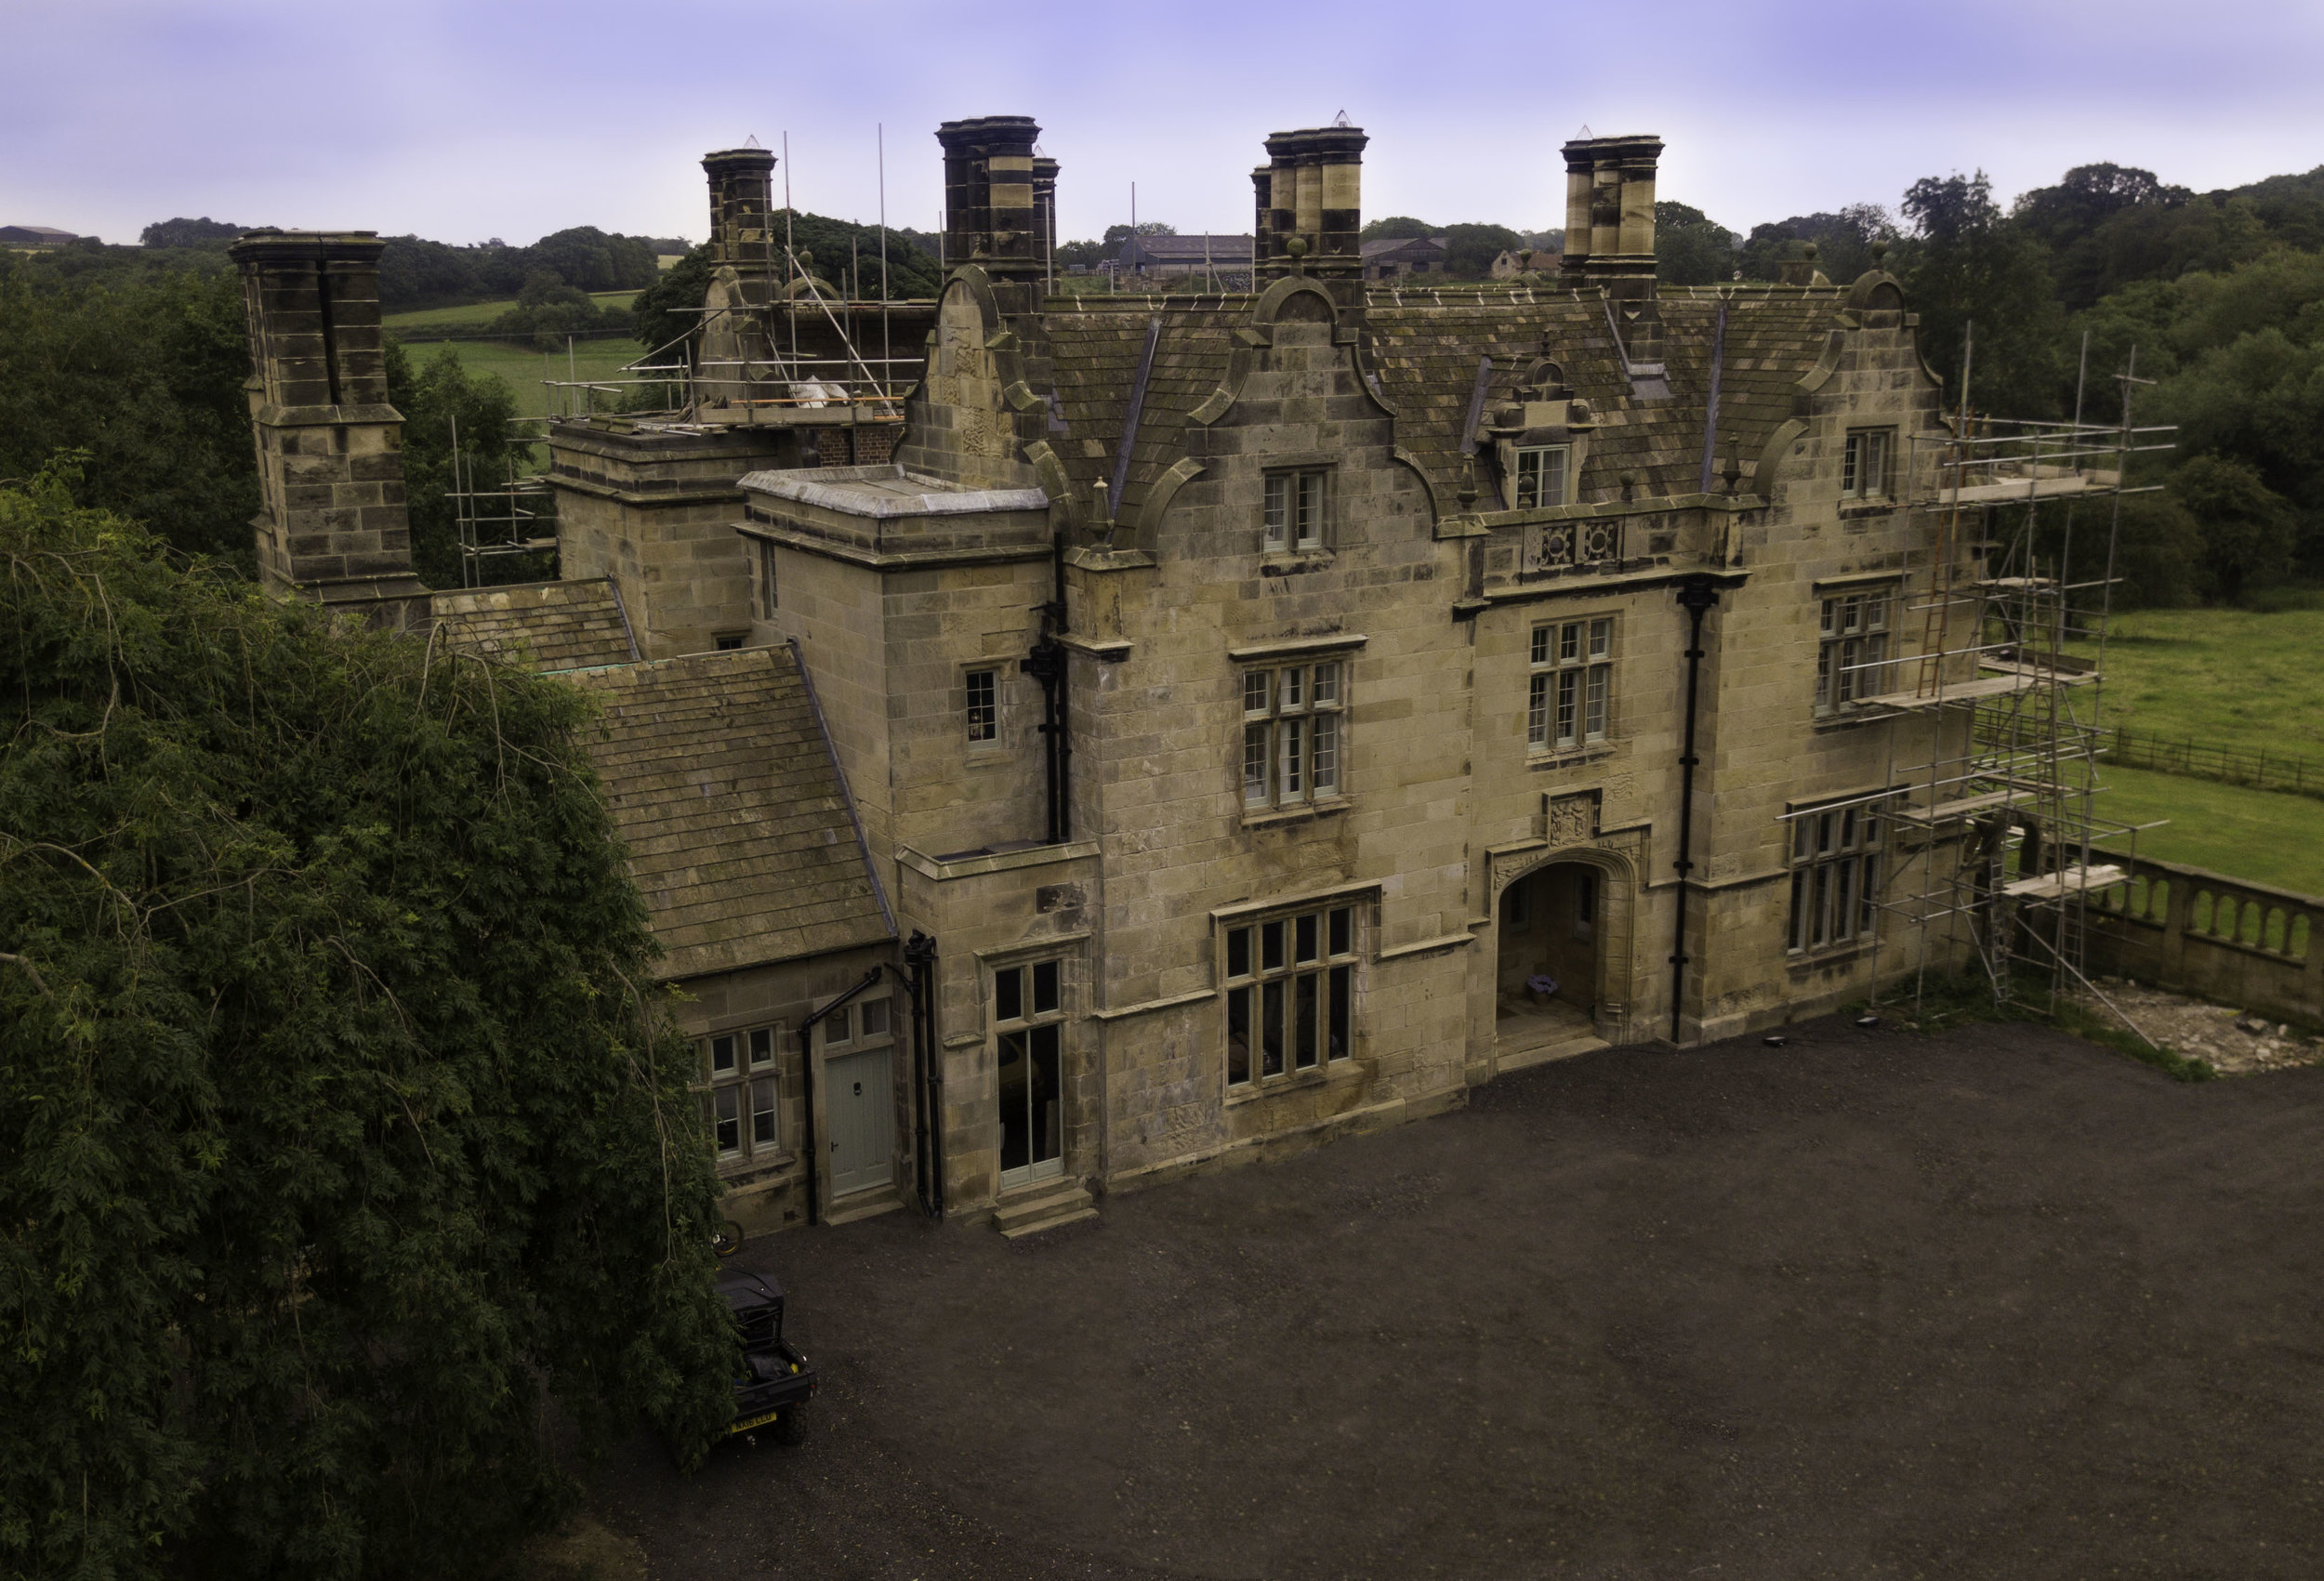 The major restoration of Grade II* Listed Sockburn Hall is nearing completion - July 2017